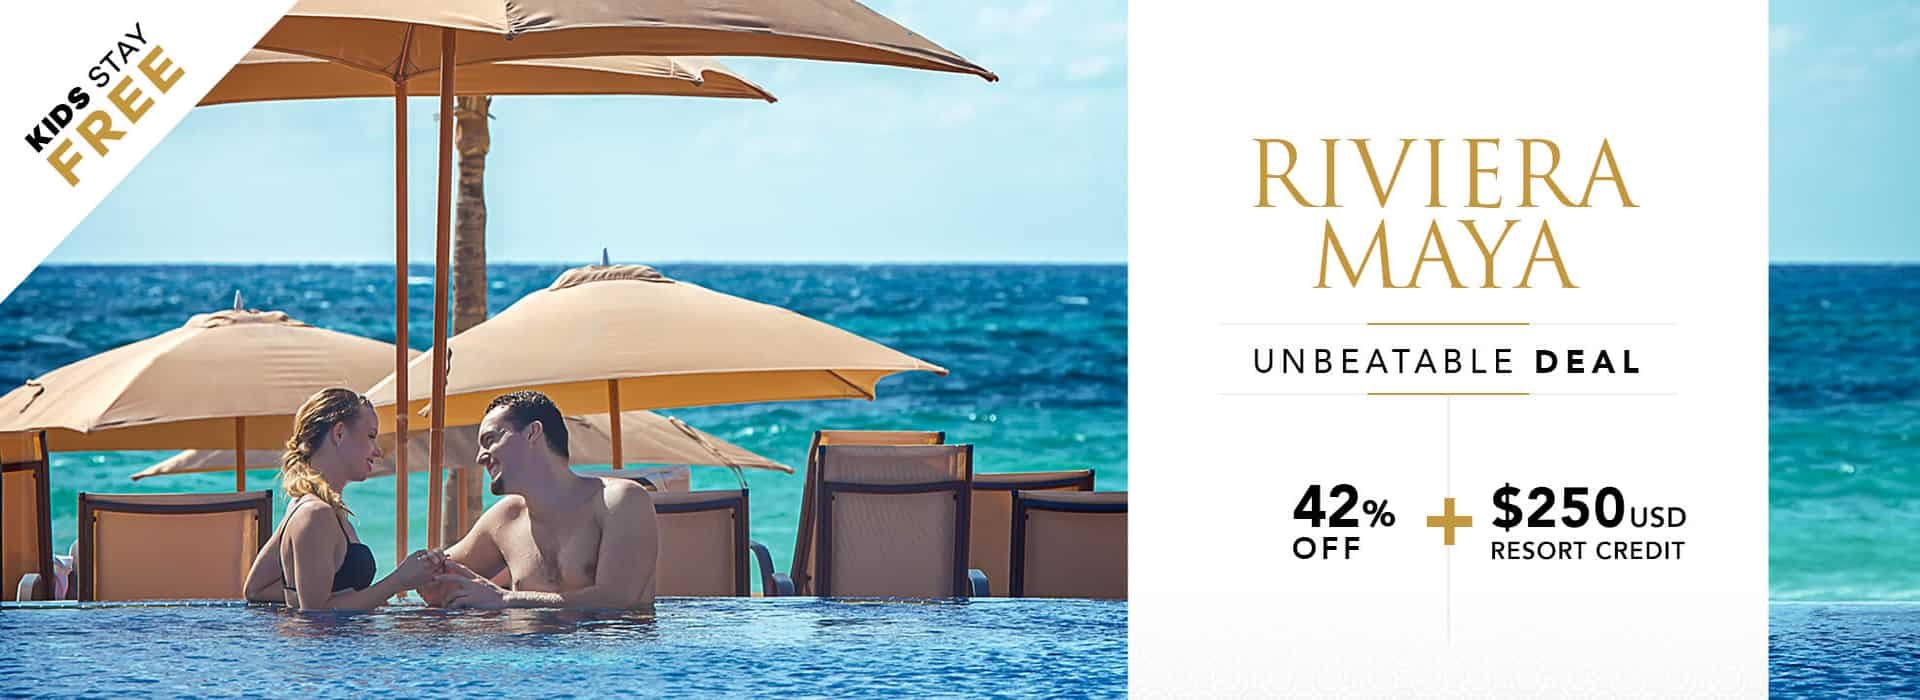 Unbeatable Deal: Riviera Maya